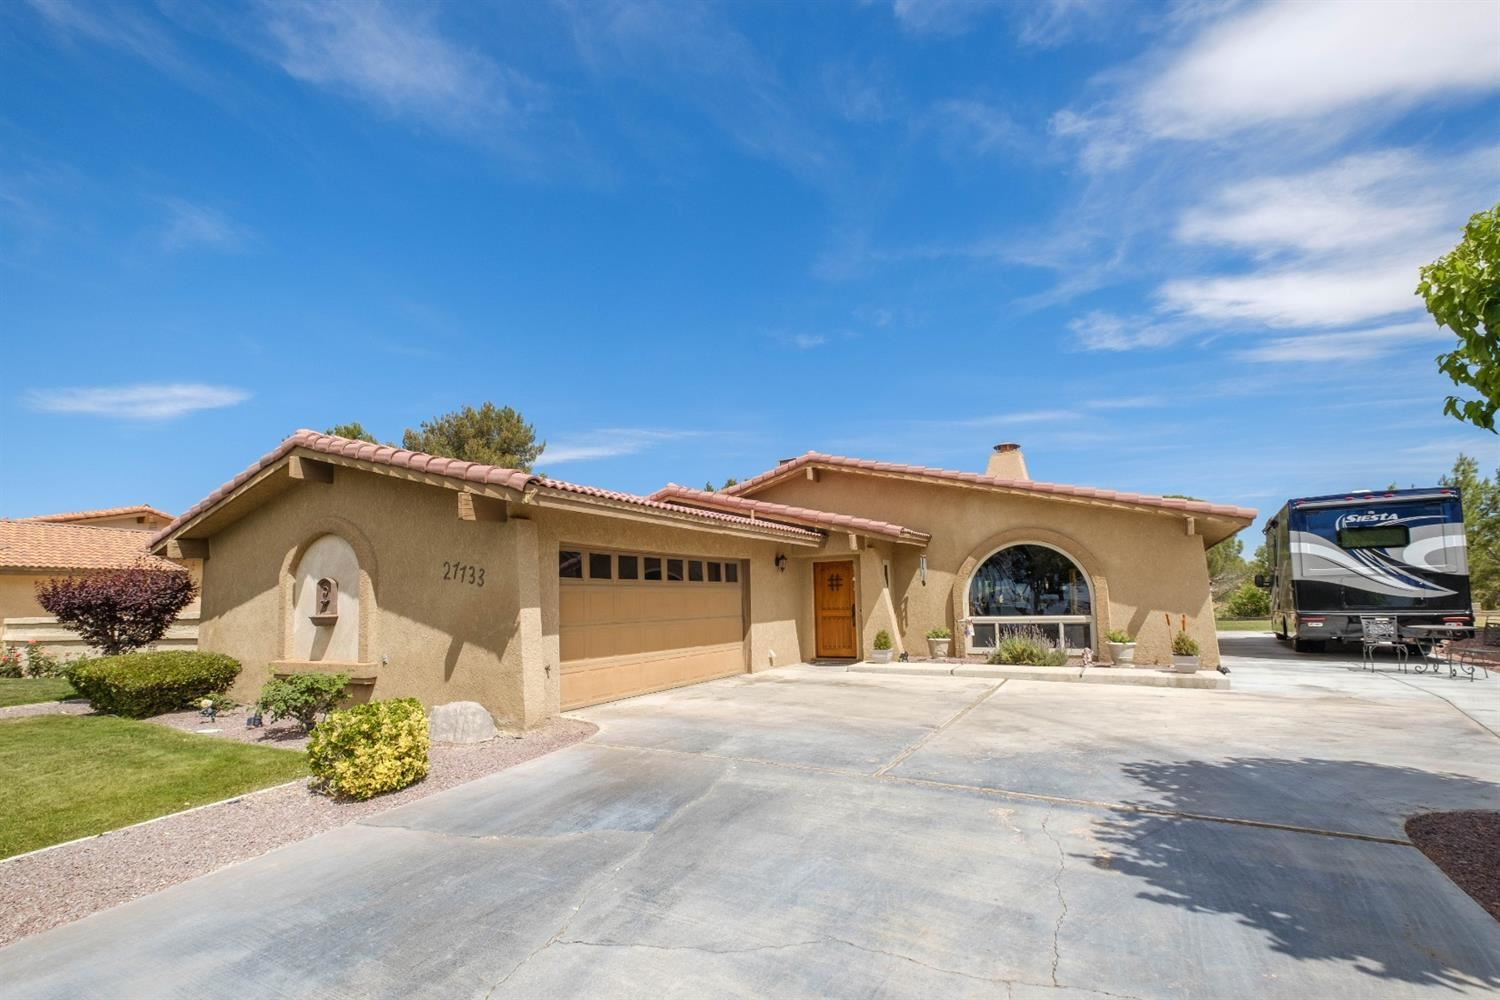 27733 Lakeview Drive, Helendale, CA 92342 - #: 524624